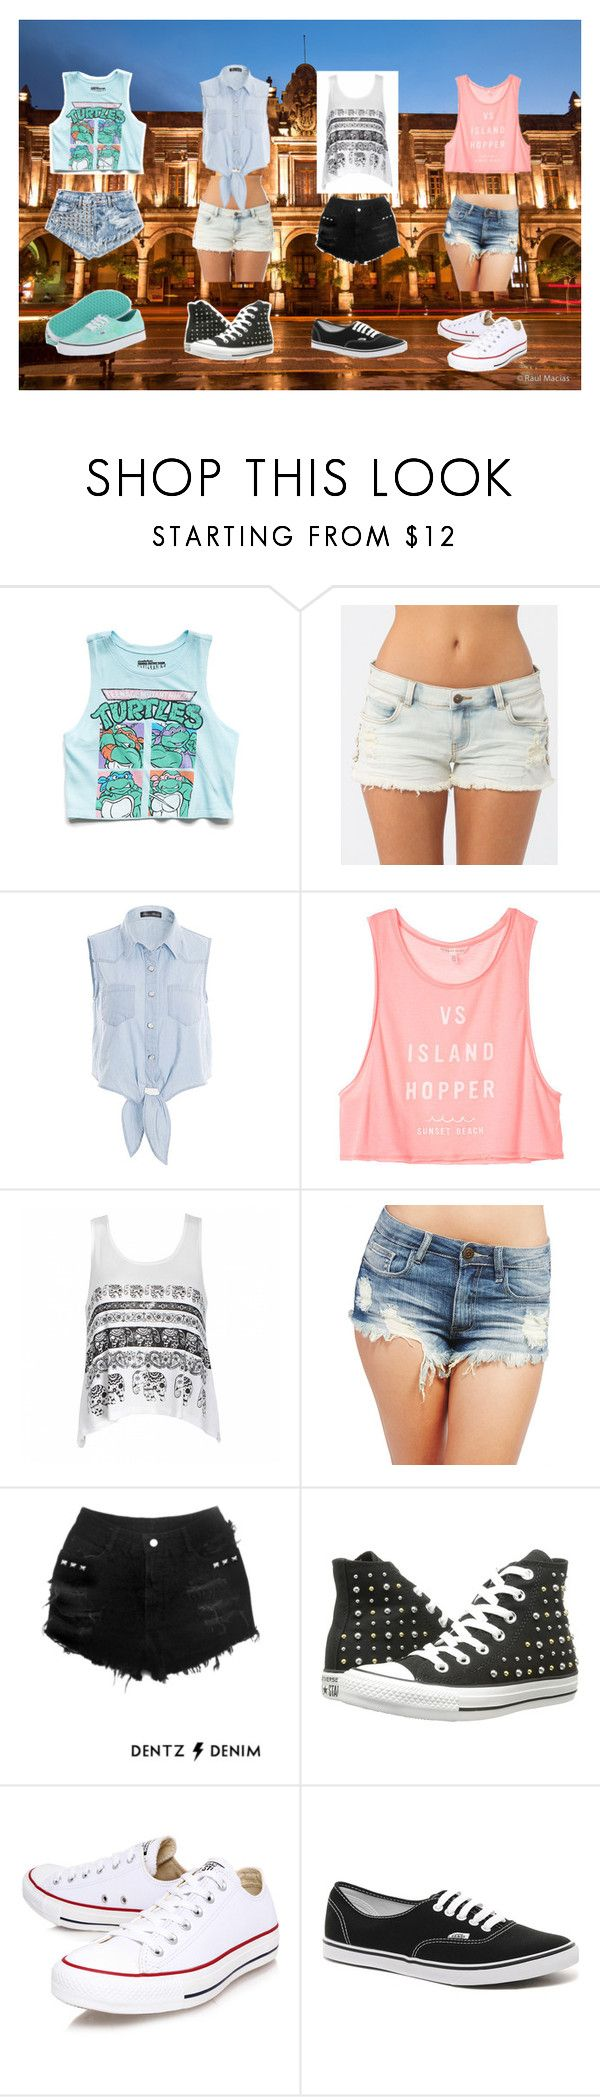 """Outfits for the trip to Guadalajara"" by heaven-cedeno ❤ liked on Polyvore featuring Forever 21, Billabong, Victoria's Secret, Ally Fashion, Wet Seal, Converse and Vans"